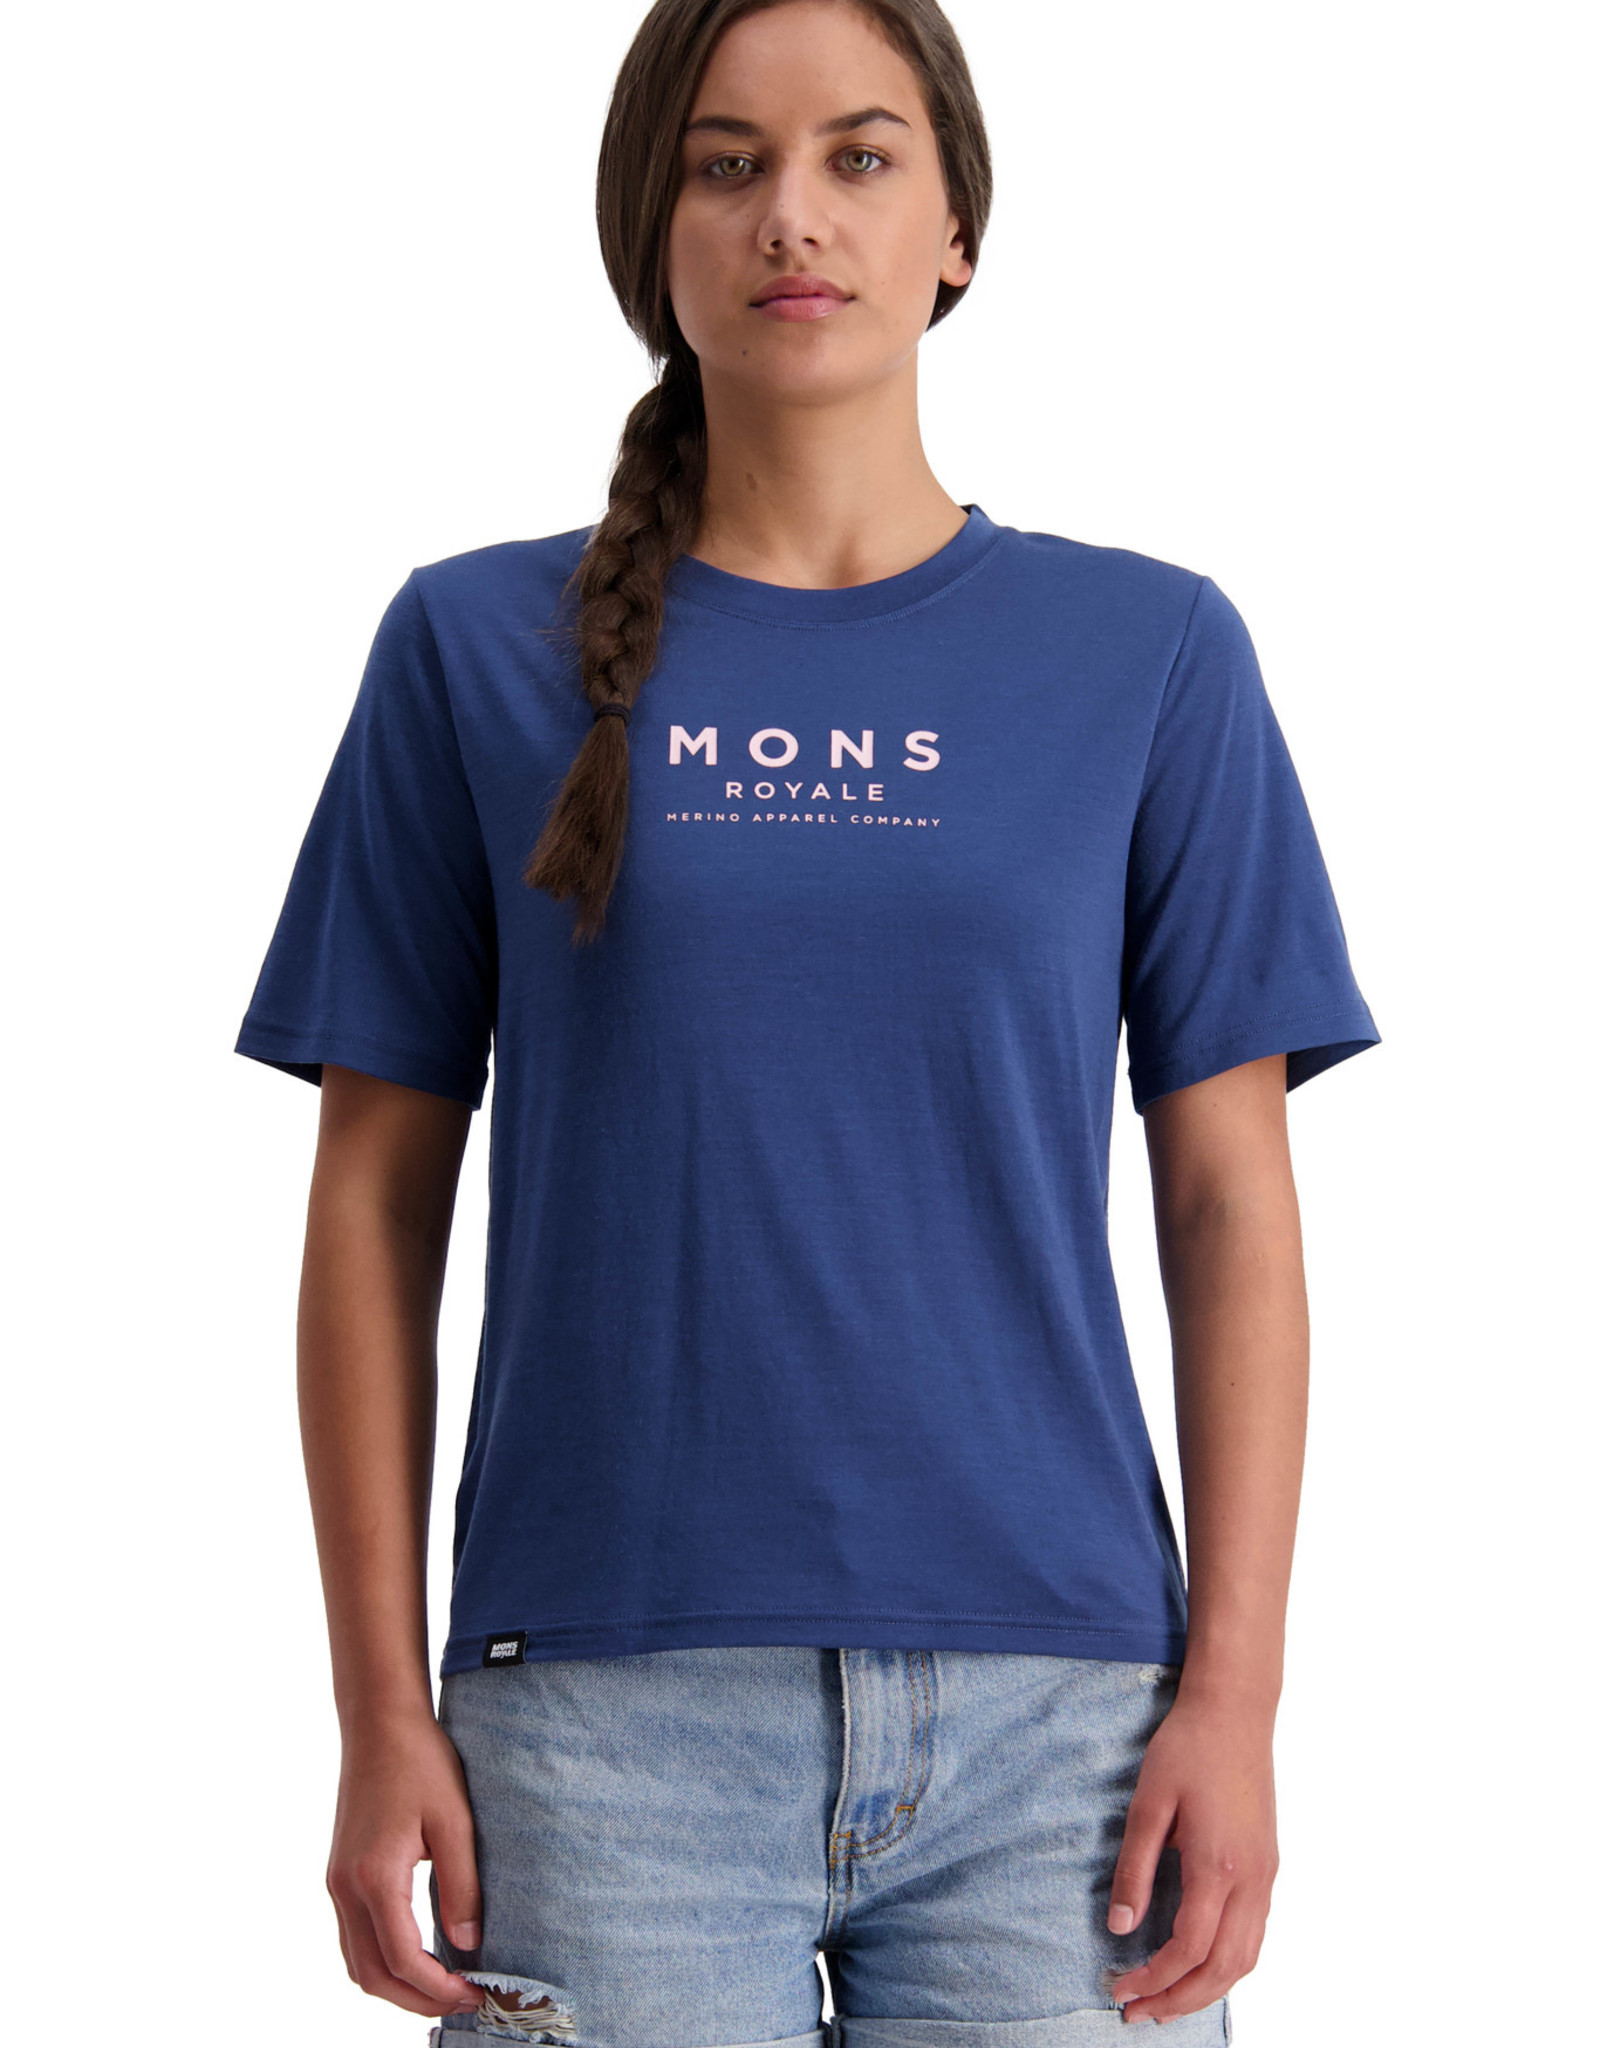 Mons Royale Mons Royale Women's Icon Relaxed Tee -S2021